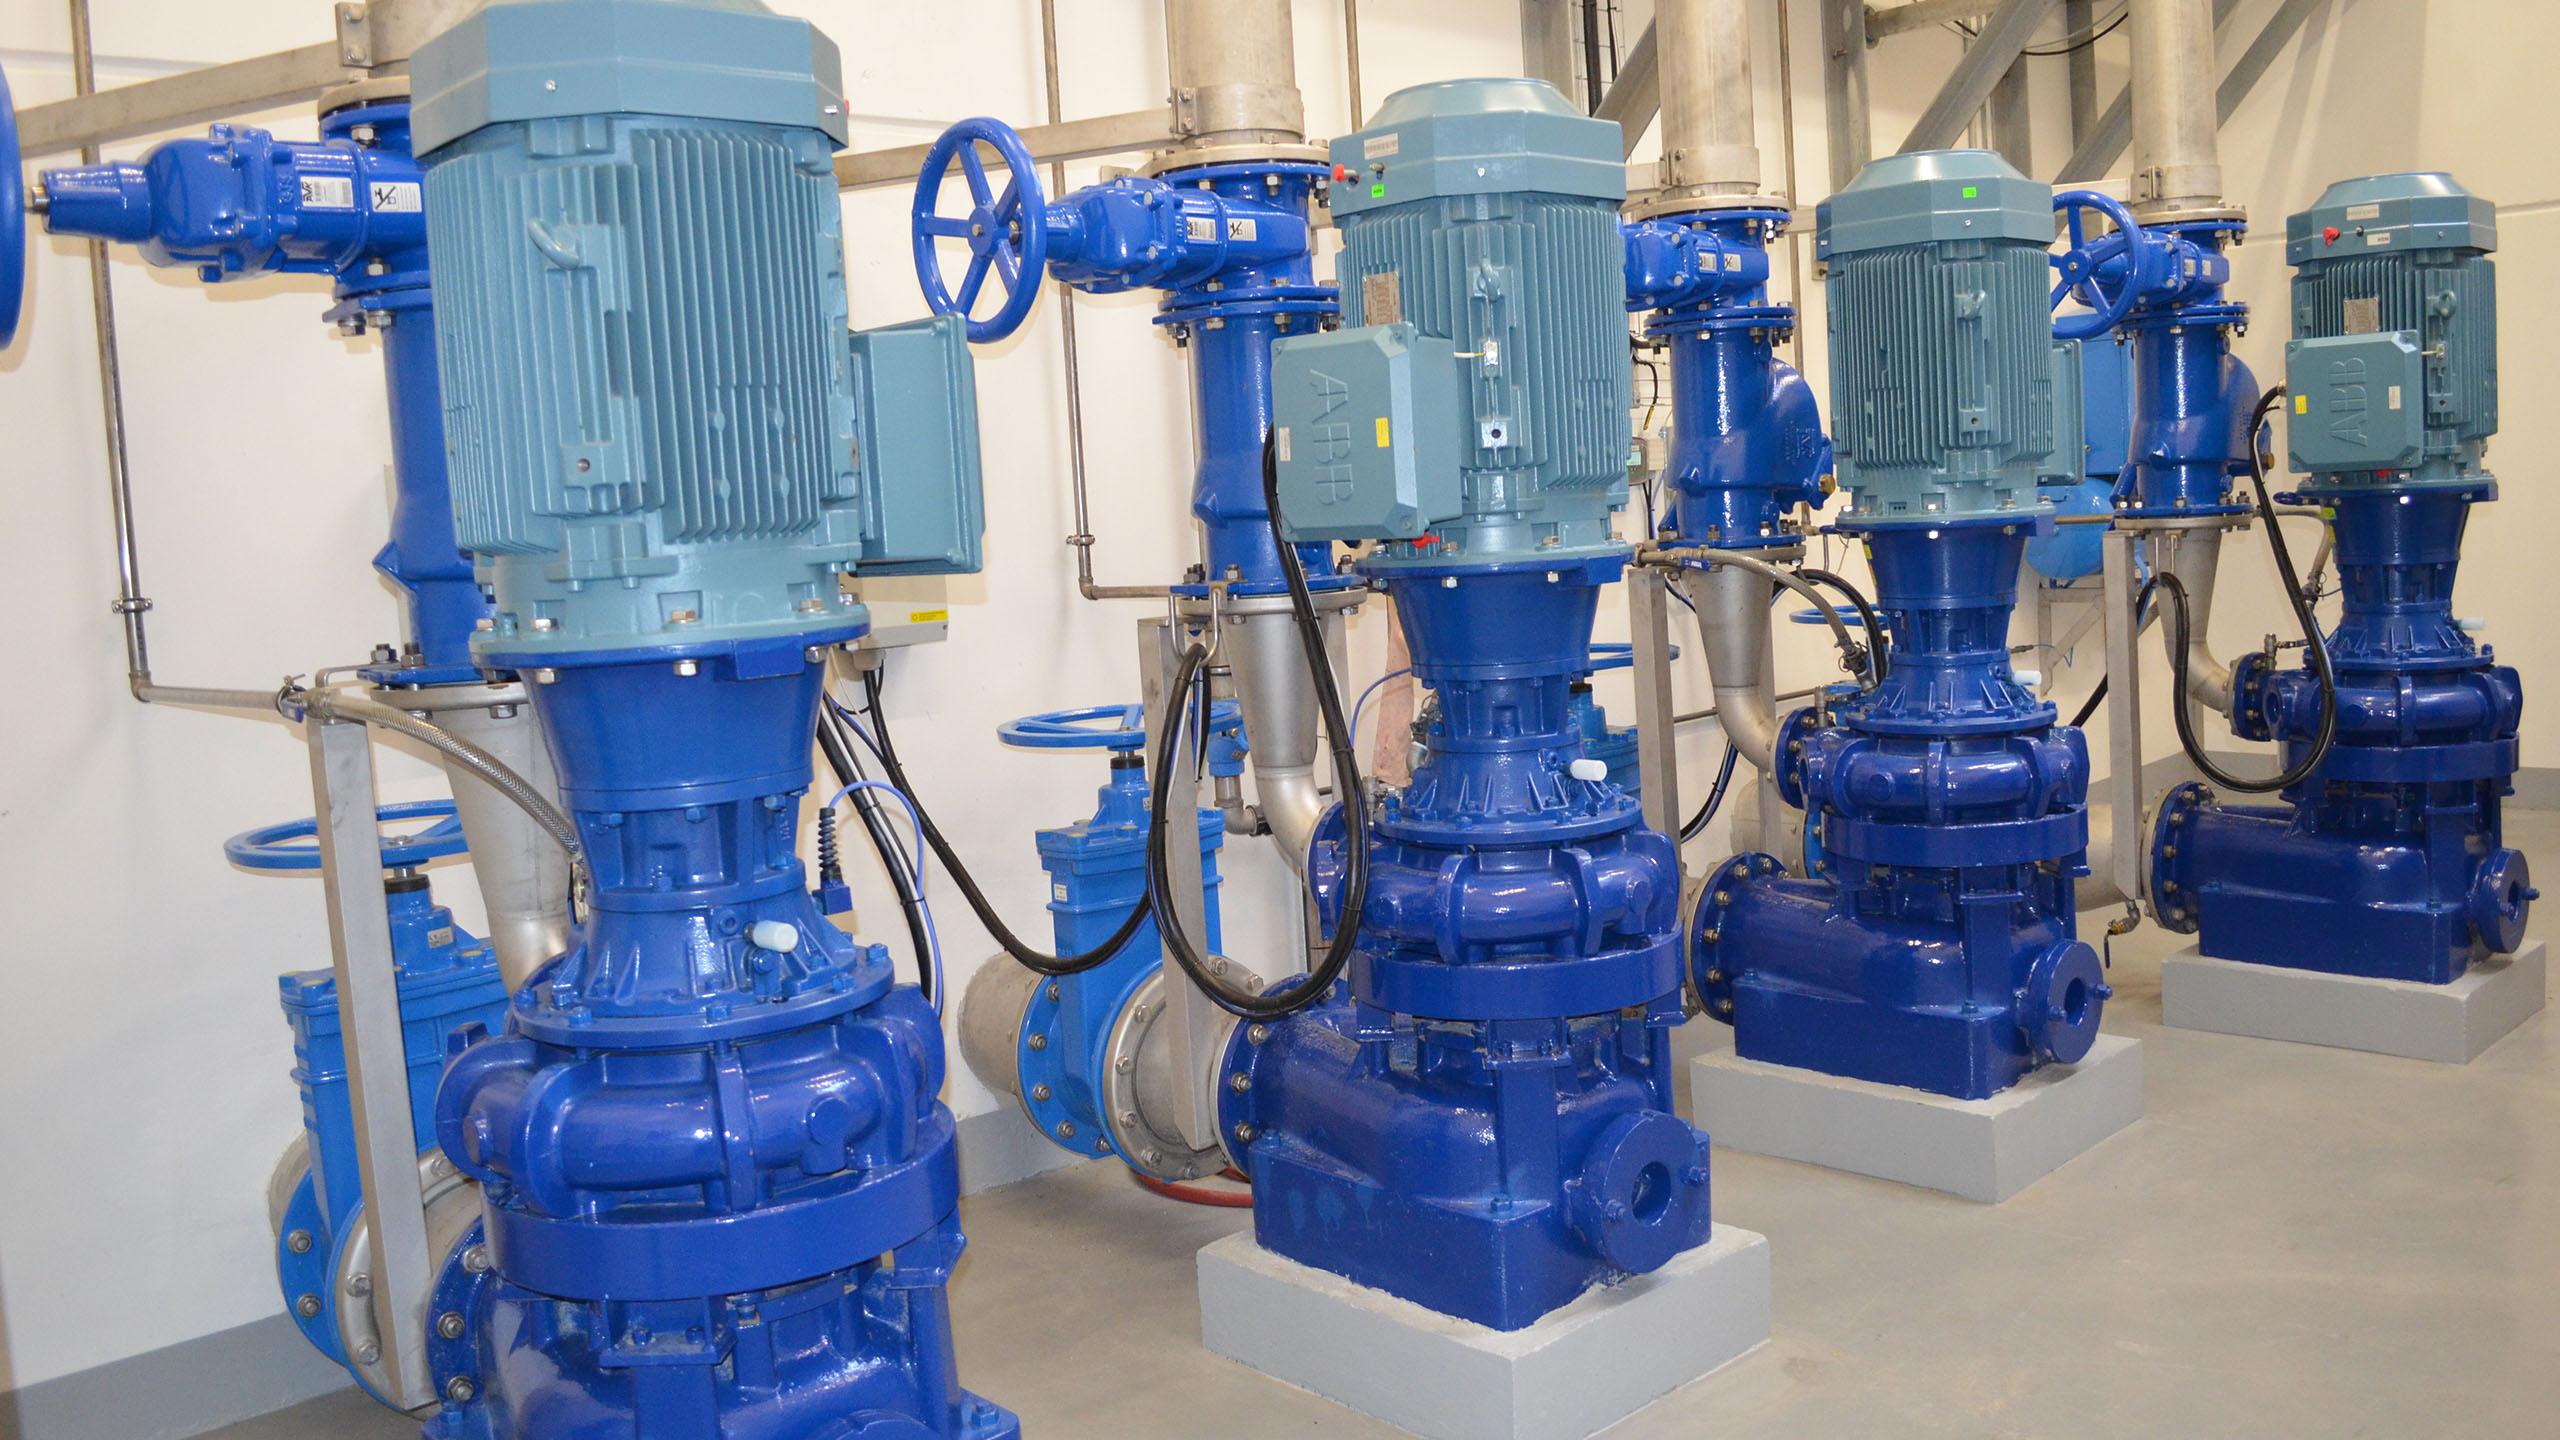 AVK valves installed in a 2014 renovation at Ebeltoft pumping stations